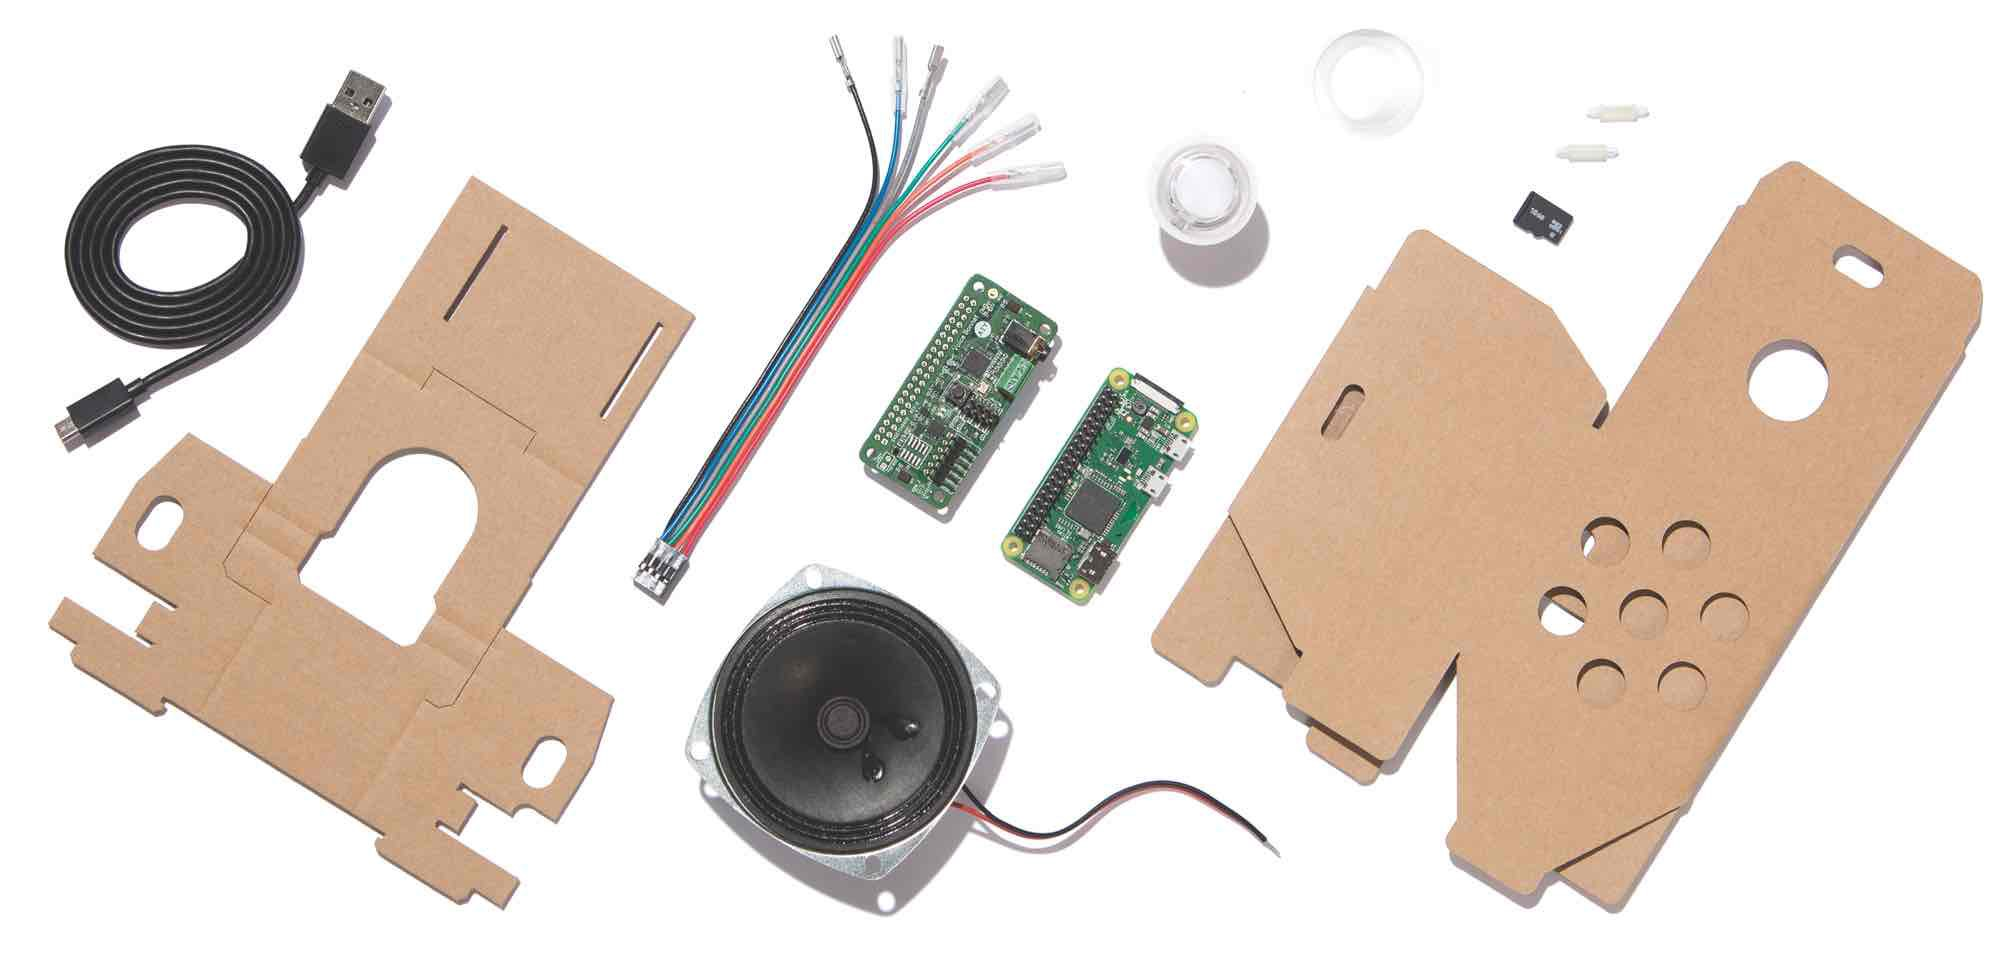 All the bits that come with the AIY Voice Kit, [https://aiyprojects.withgoogle.com/voice/#list-of-materials](https://aiyprojects.withgoogle.com/voice/#list-of-materials)